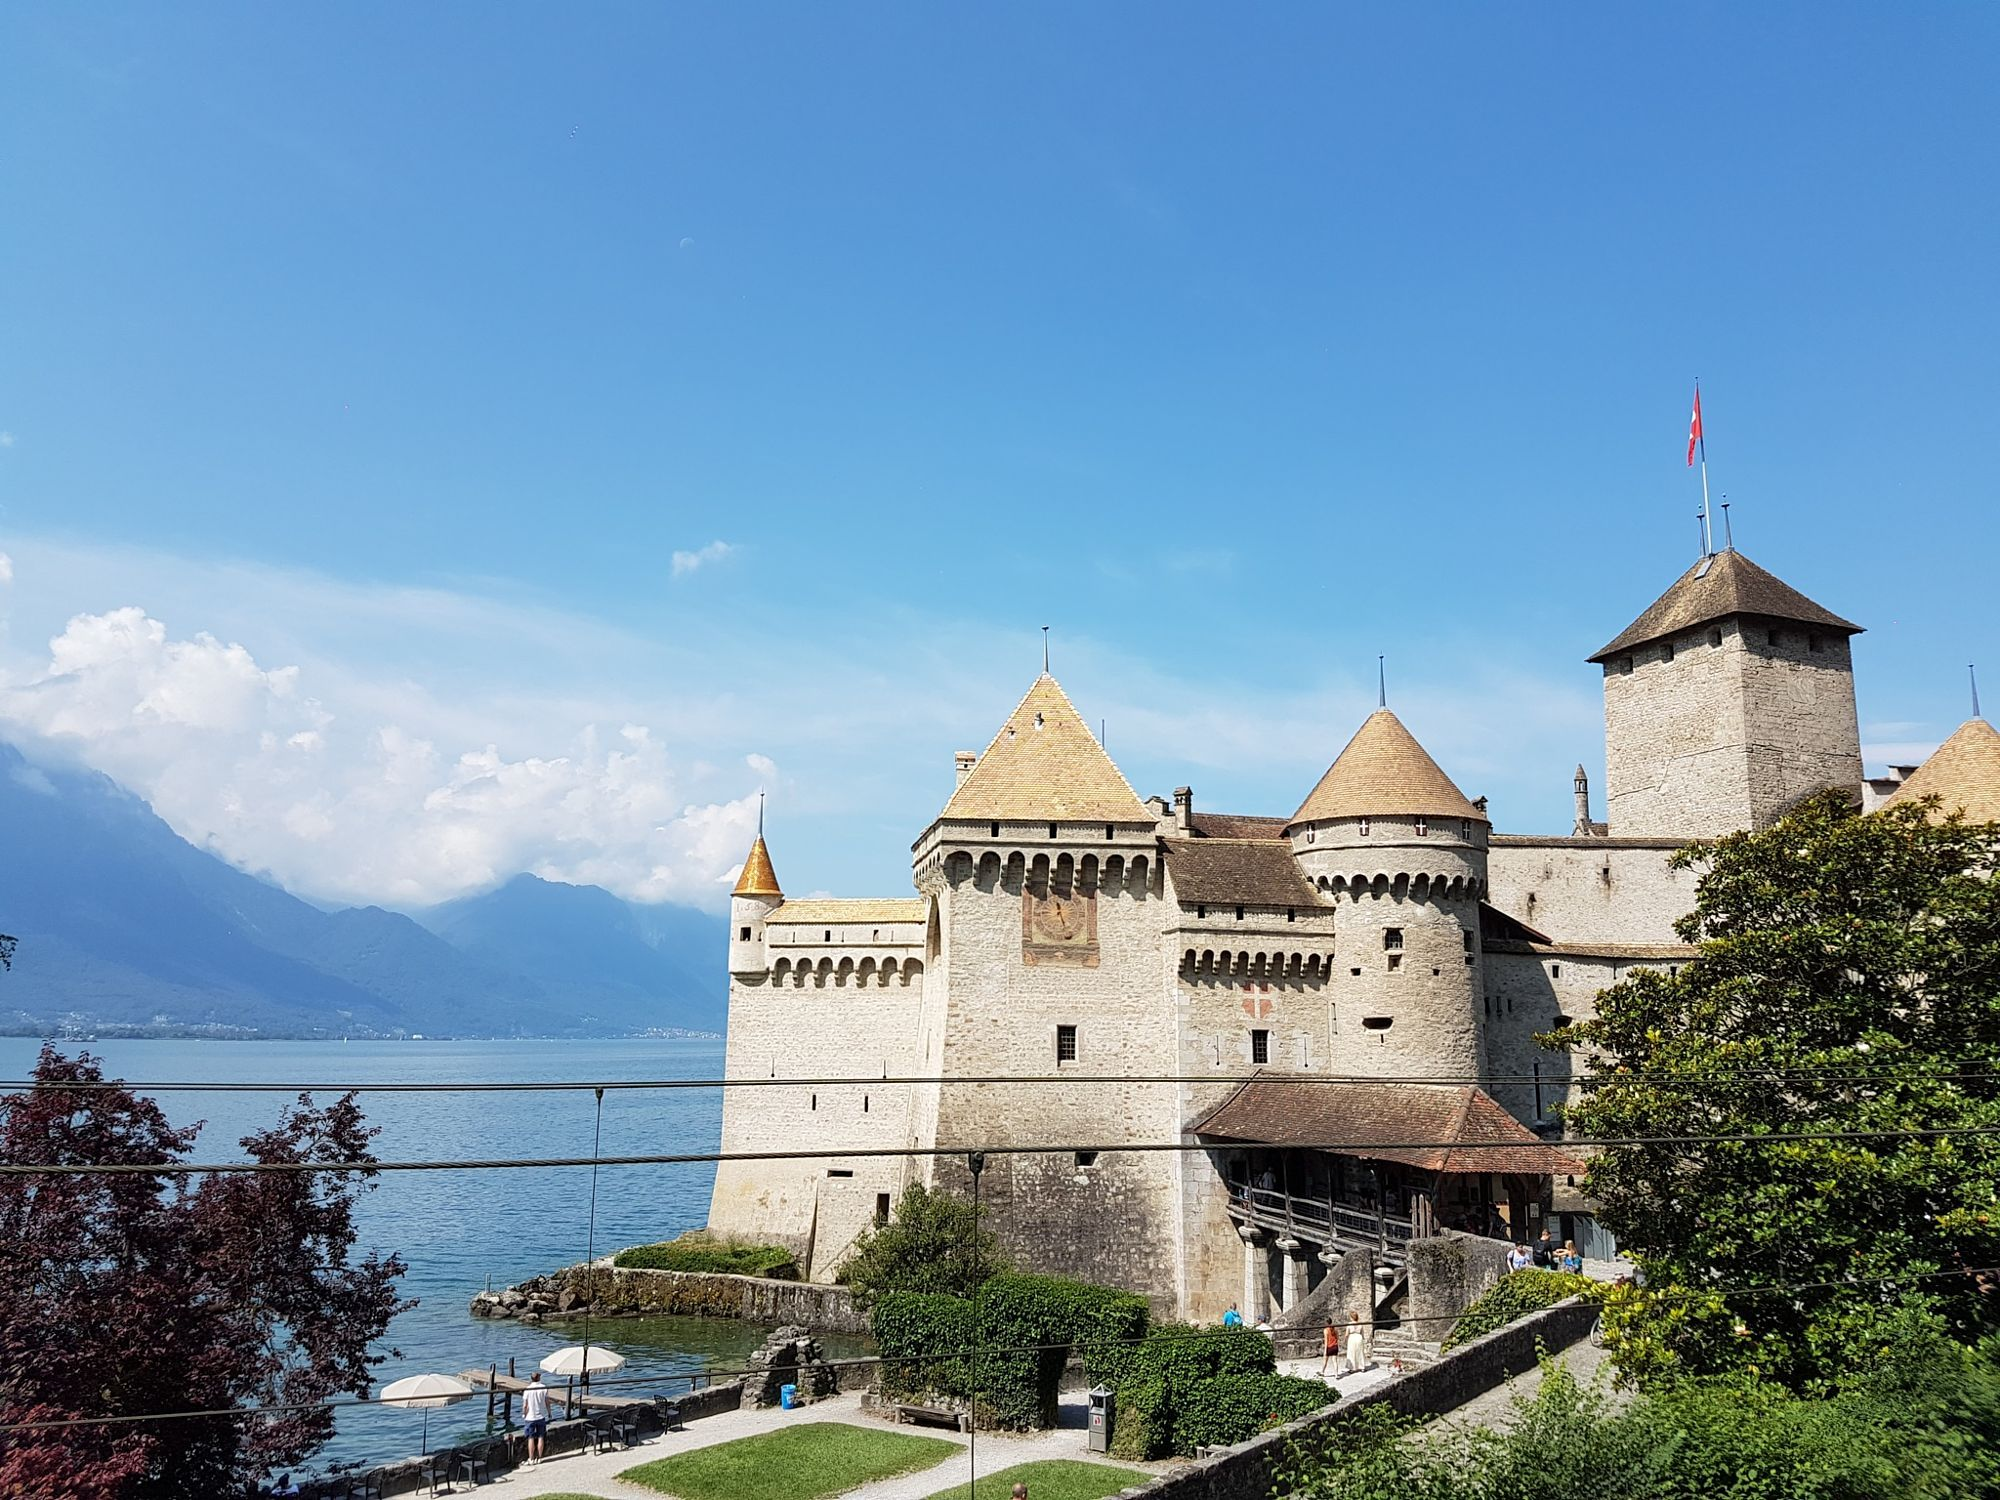 Cillon Castle Montreux  Switzerland  Travel photo by butiuovidiu http://rarme.com/?F9gZi